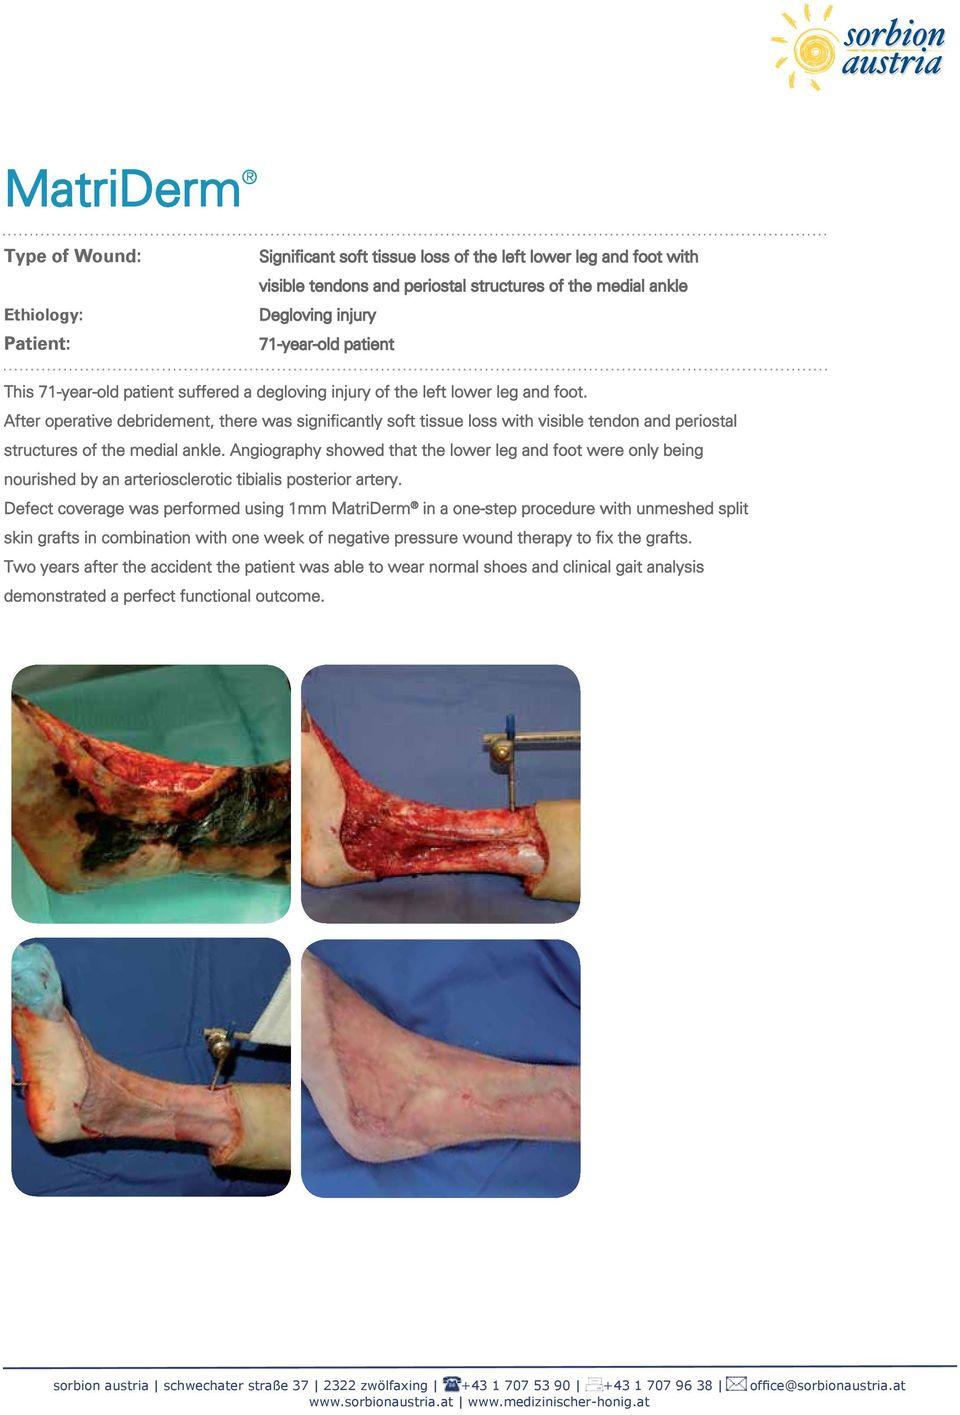 After operative debridement, there was significantly soft tissue loss with visible tendon and periostal structures of the medial ankle.